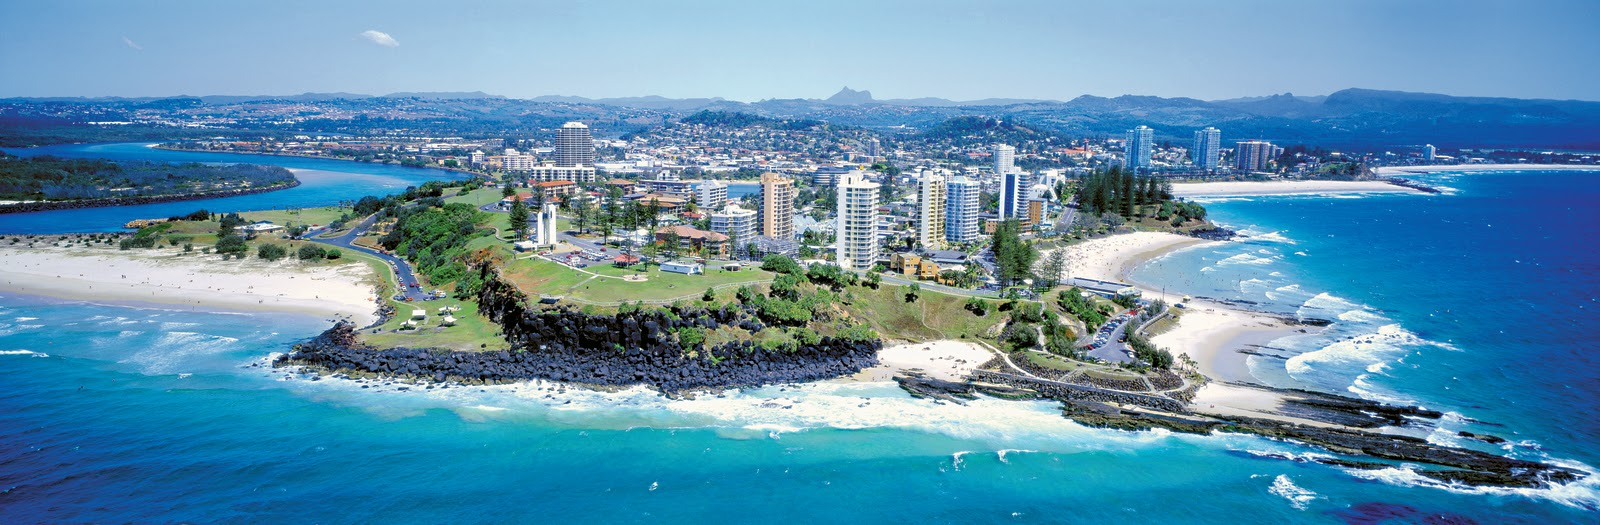 Tweed Heads Australia  City pictures : Tweed Heads and Coolangatta